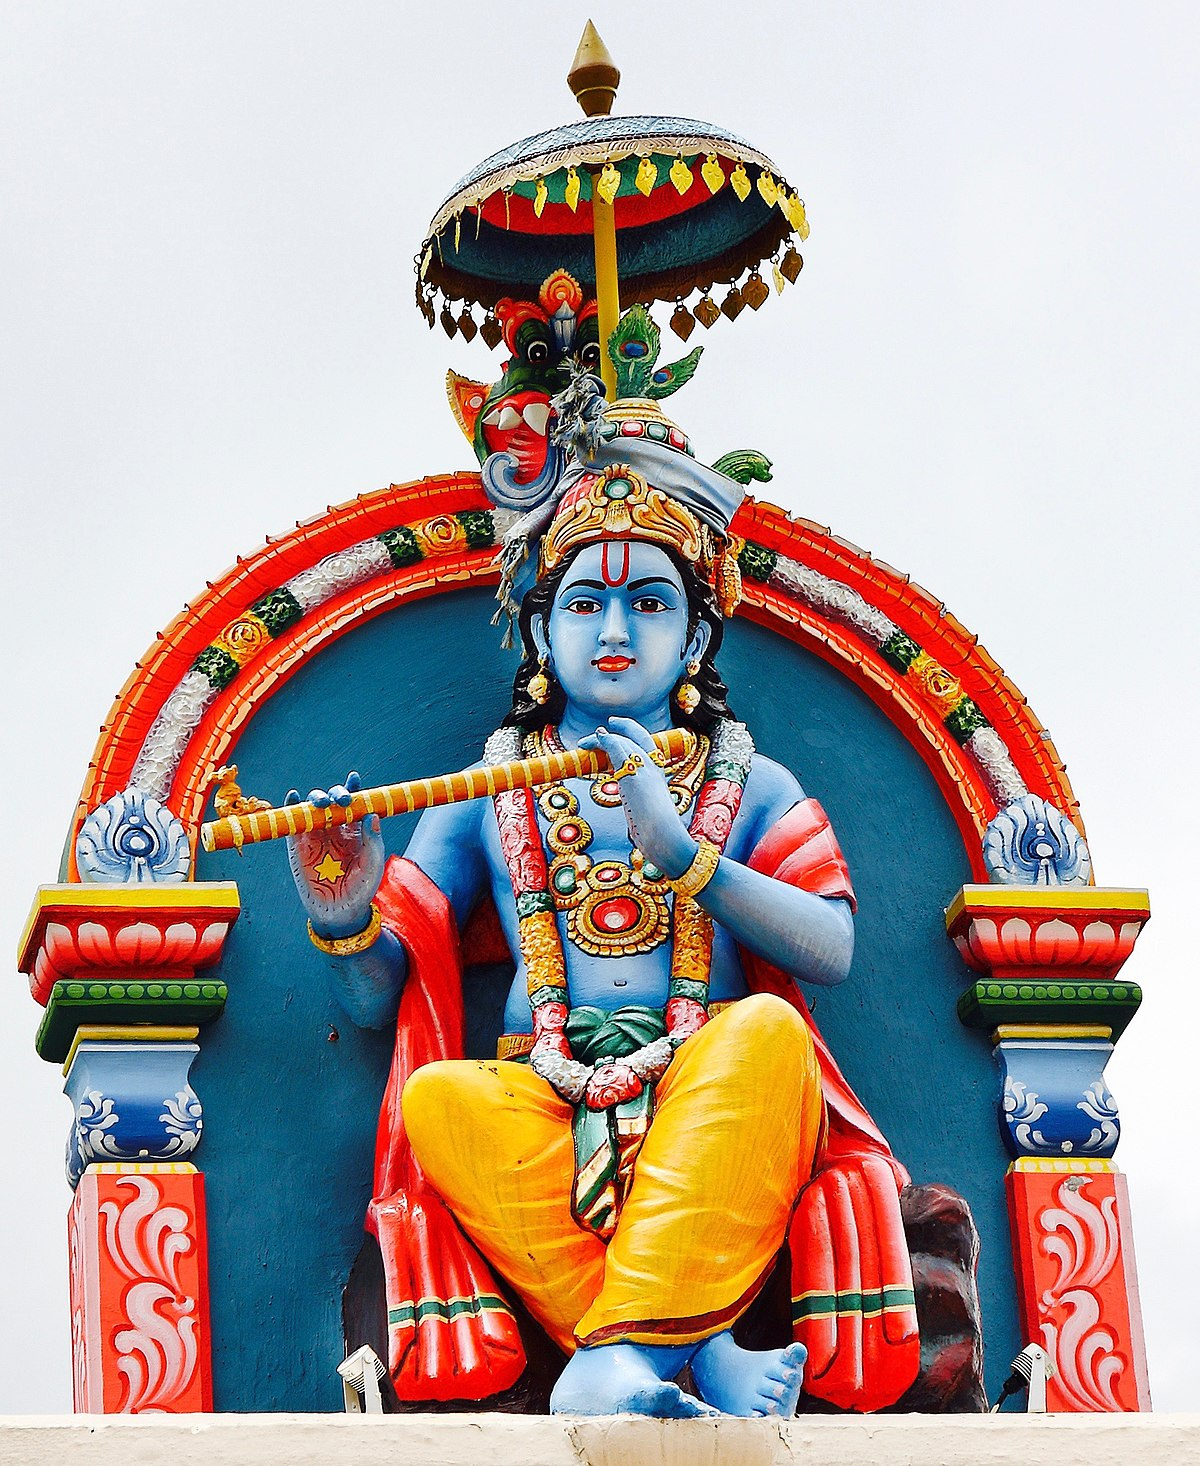 [Image: 1200px-2_Krishna_at_Sri_Mariamman_Temple_Singapore.jpg]